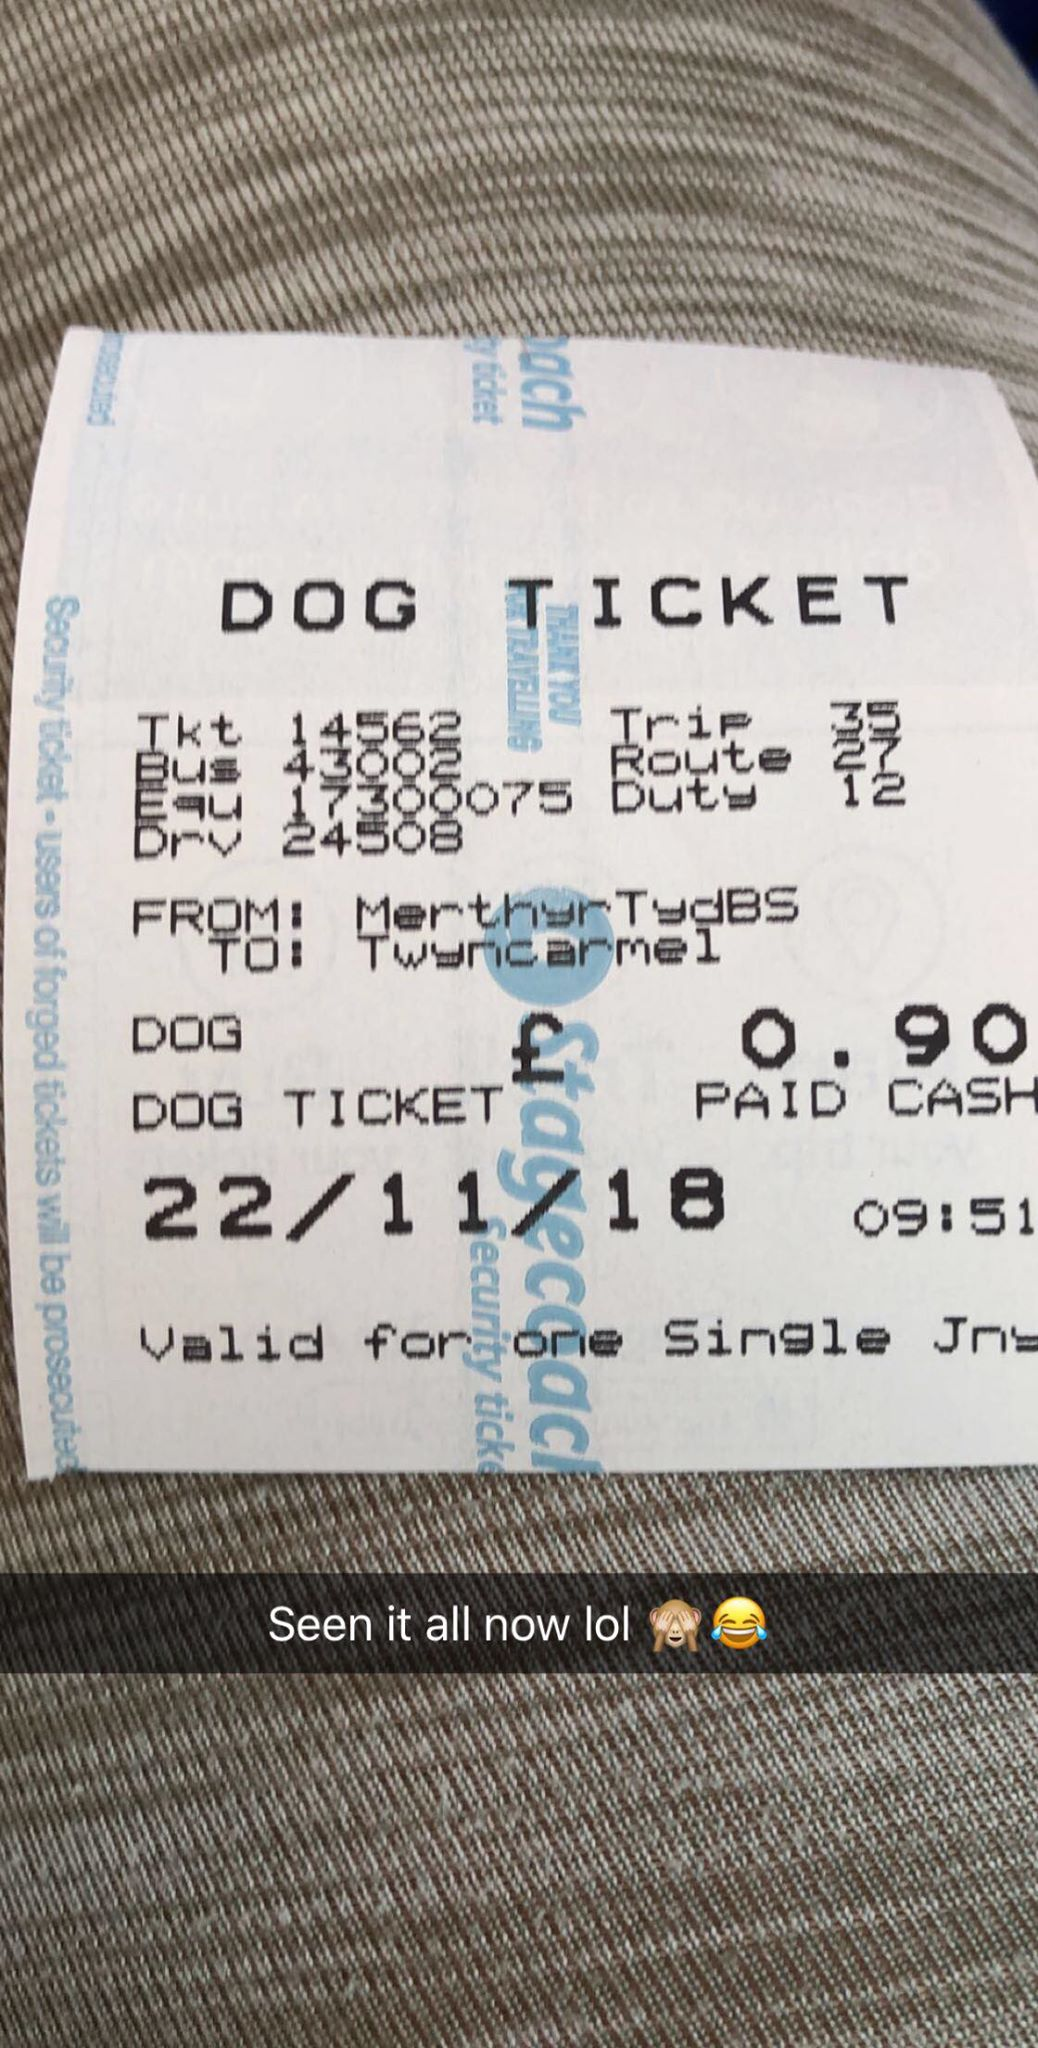 Heidi Lewis couldn't believe it when the bus driver asked her to pay for her dog to get on the bus. Credit: Heidi Lewis